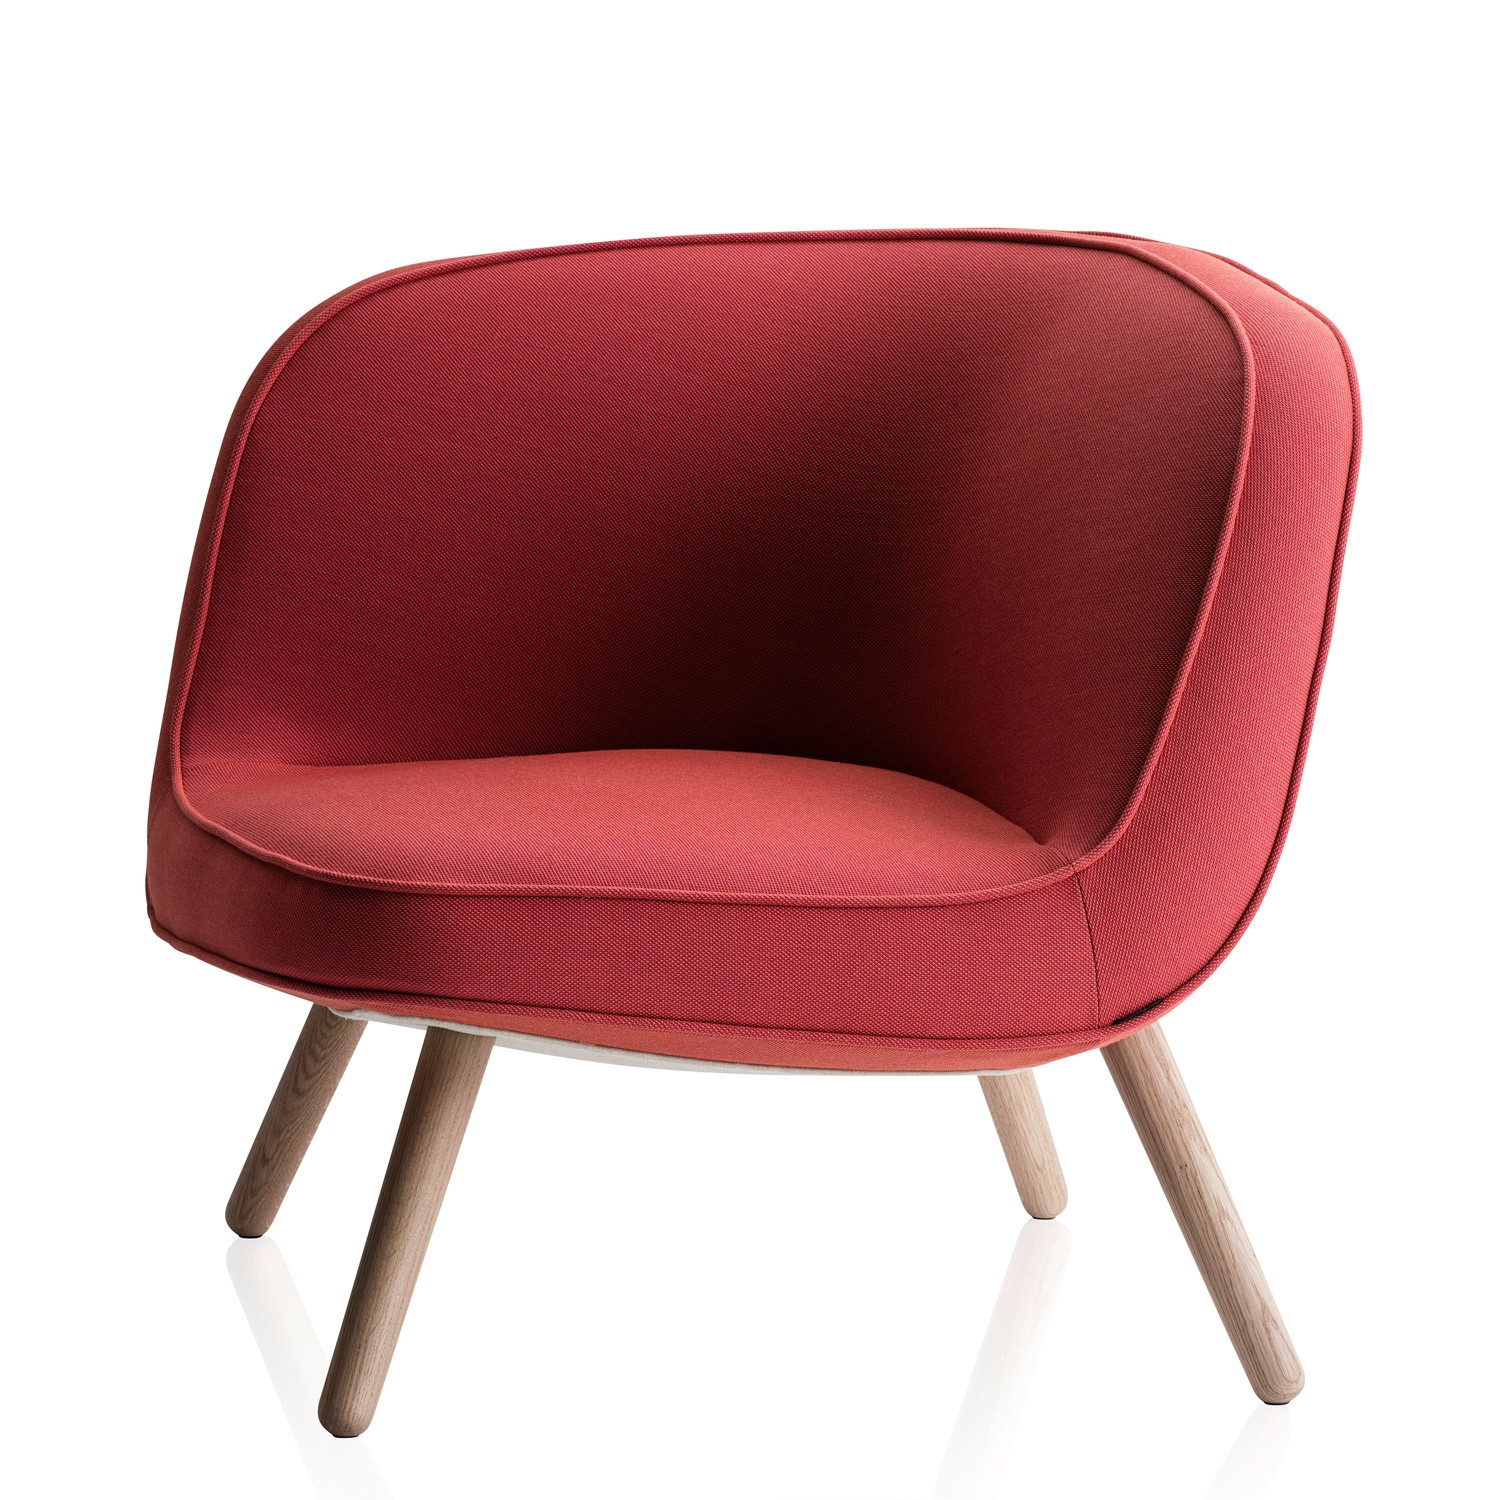 VIA57™ Easy Chair